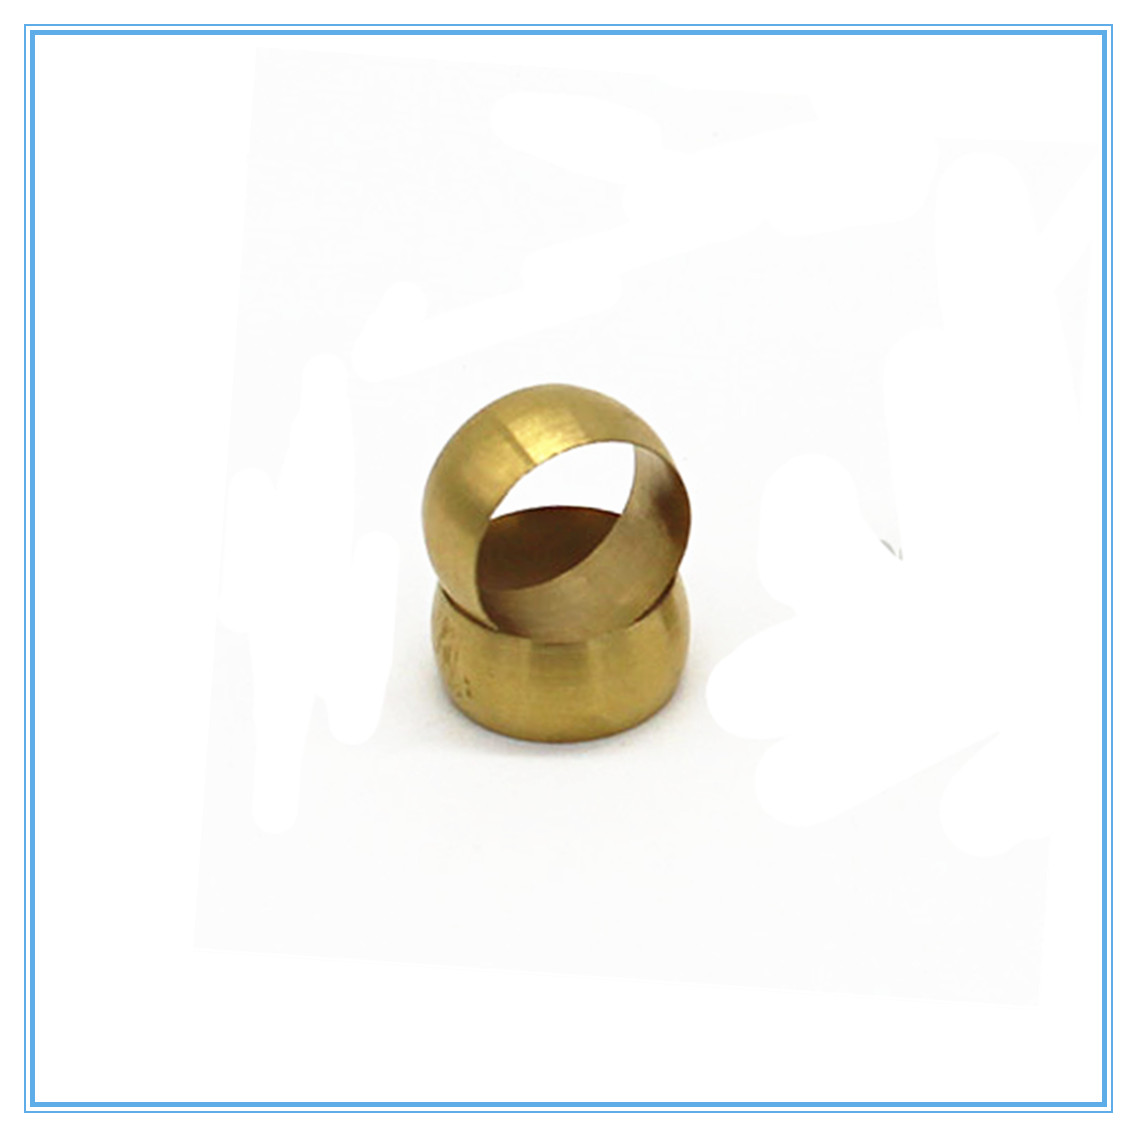 10pc Brass Double Taper Ferrule 10-20mm OD Compression Sleeve Seal Ring Fittings Tube Centralized Lubrication System